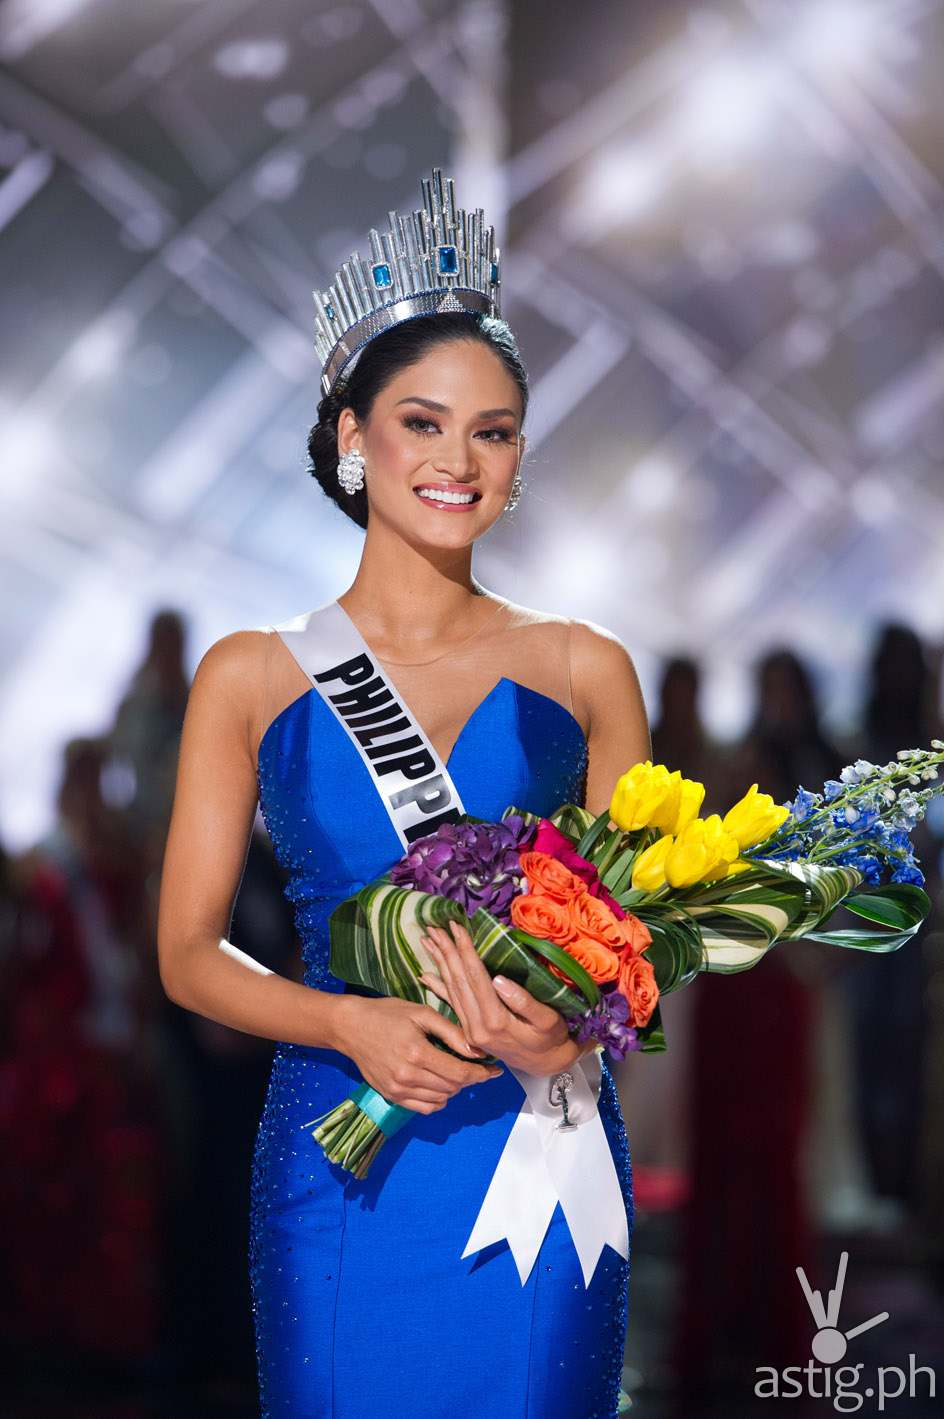 Pia Alonzo Wurtzbach, Miss Philippines 2015 is crowned the winner at the conclusion of The 2015 MISS UNIVERSE® Telecast airing live from Planet Hollywood Resort & Casino on FOX Sunday, December 20. HO/The Miss Universe Organization